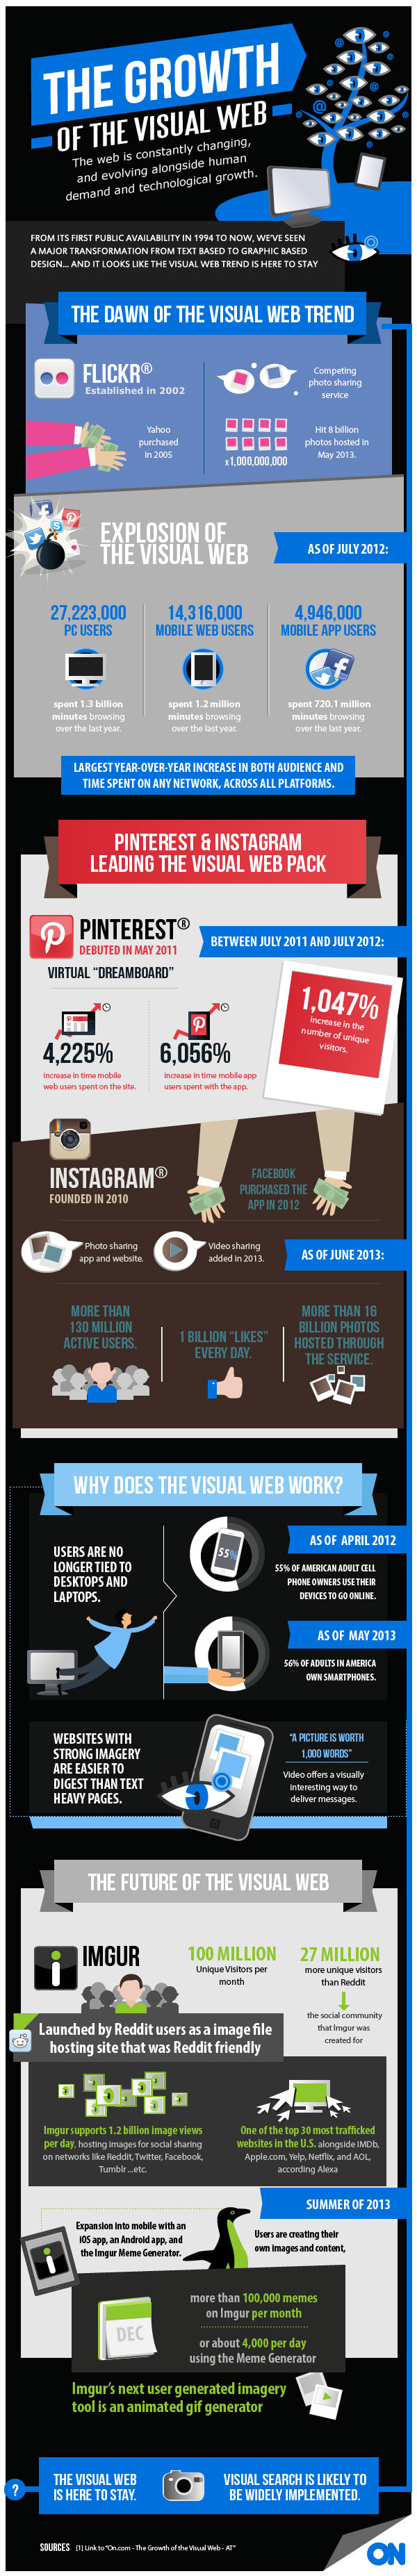 The Growth of the Visual Web